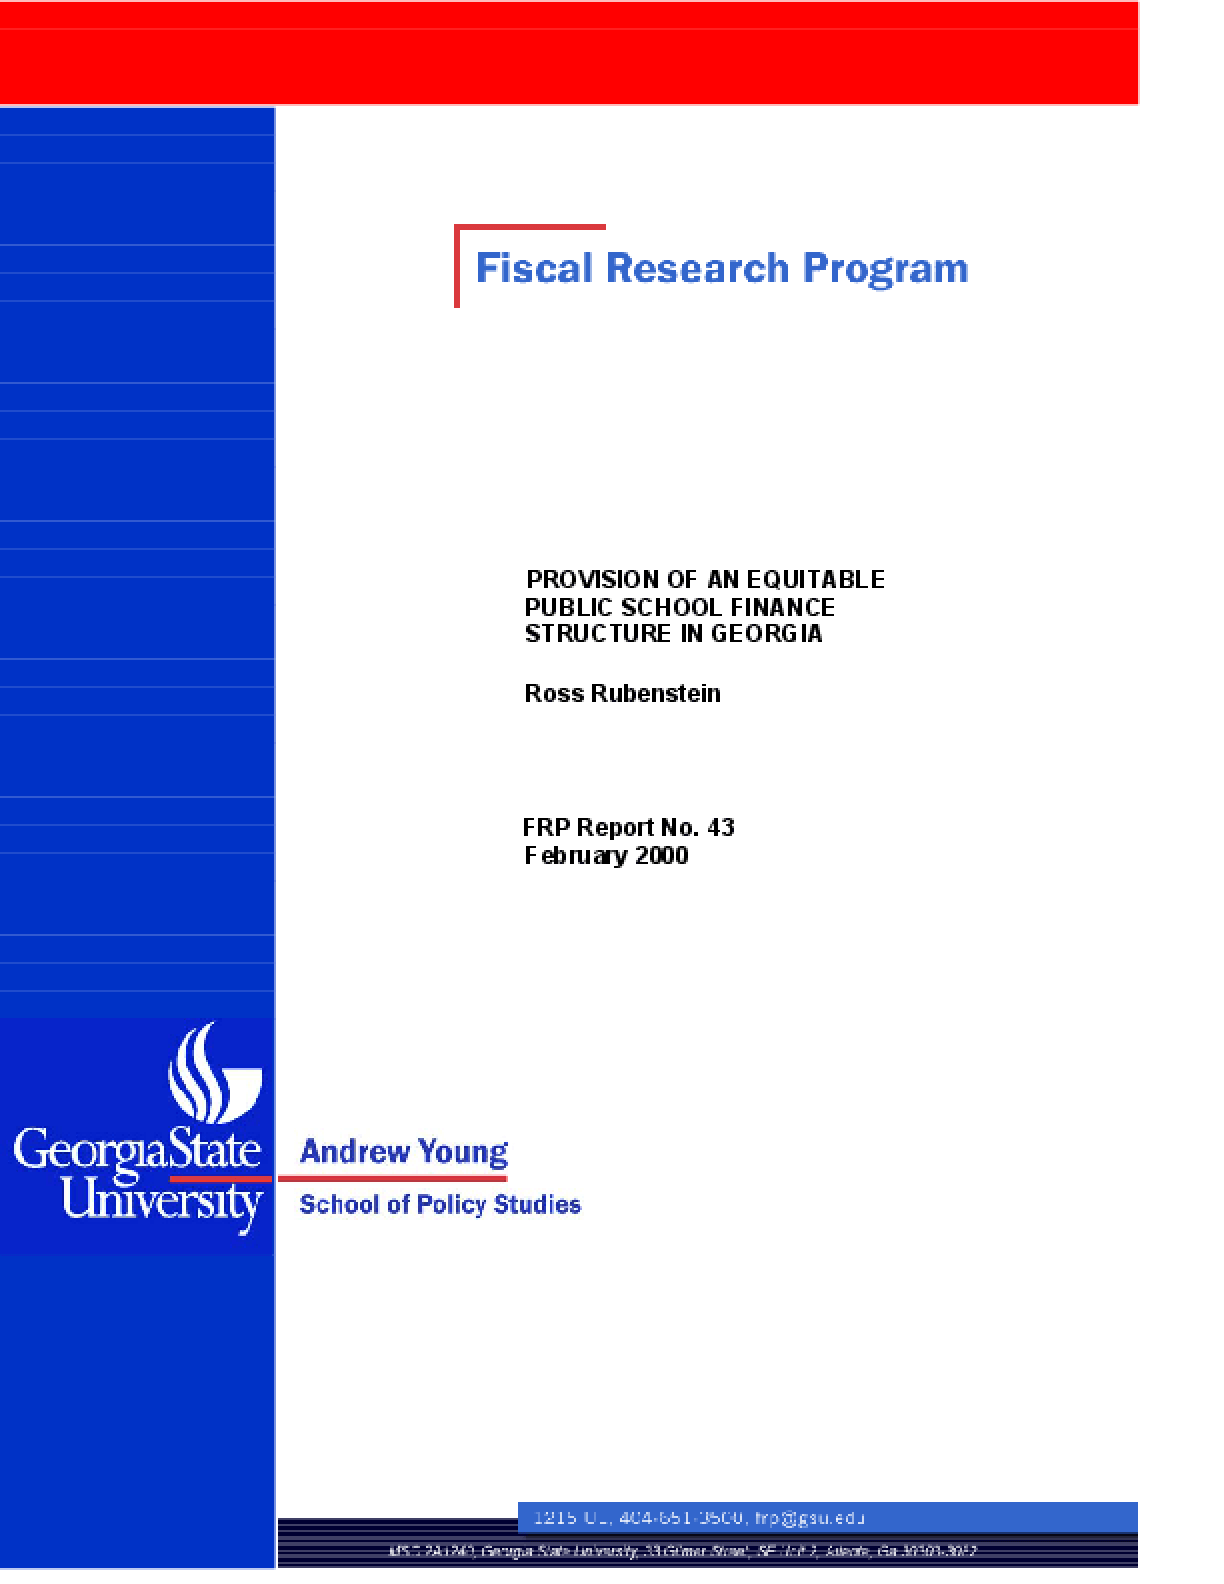 Provision of An Equitable Public School Finance Structure in Georgia